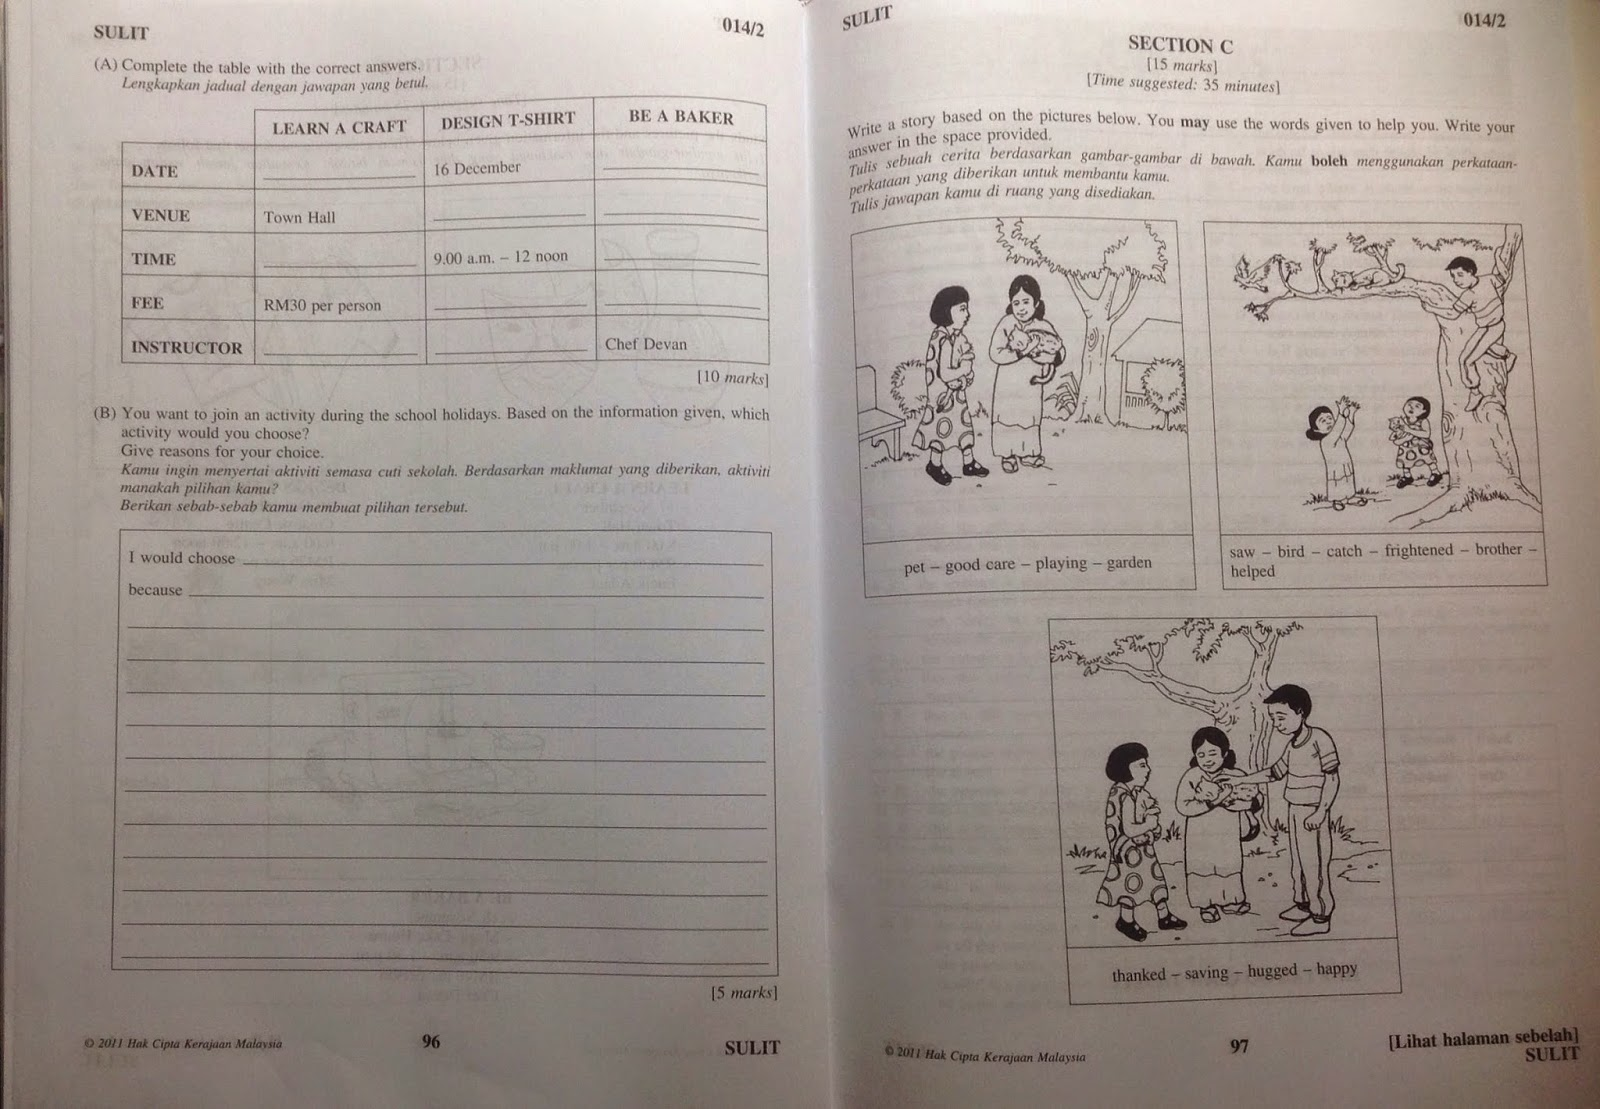 Maths Questions For Year 6 Upsr